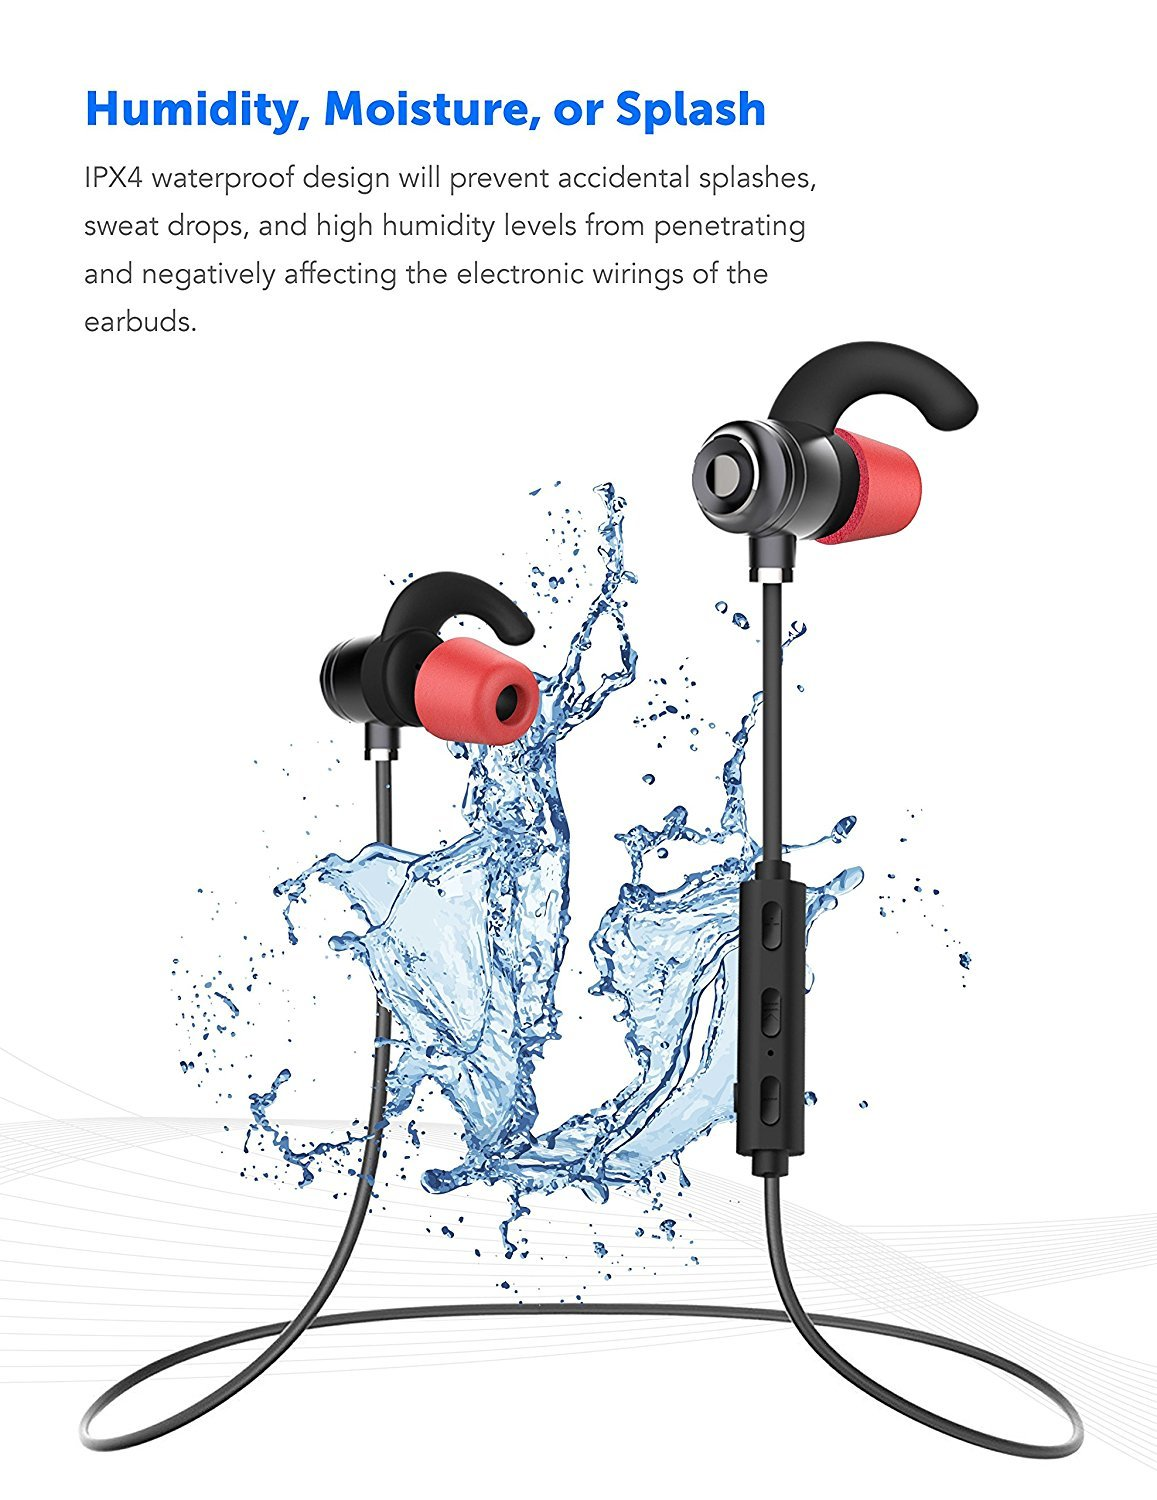 Sonim XP STRIKE Bluetooth Headset In-Ear Running Earbuds IPX4 Waterproof with Mic Stereo Earphones, CVC 6.0 Noise Cancellation, works with, Apple, Samsung,Google Pixel,LG by Ixir (Image #2)